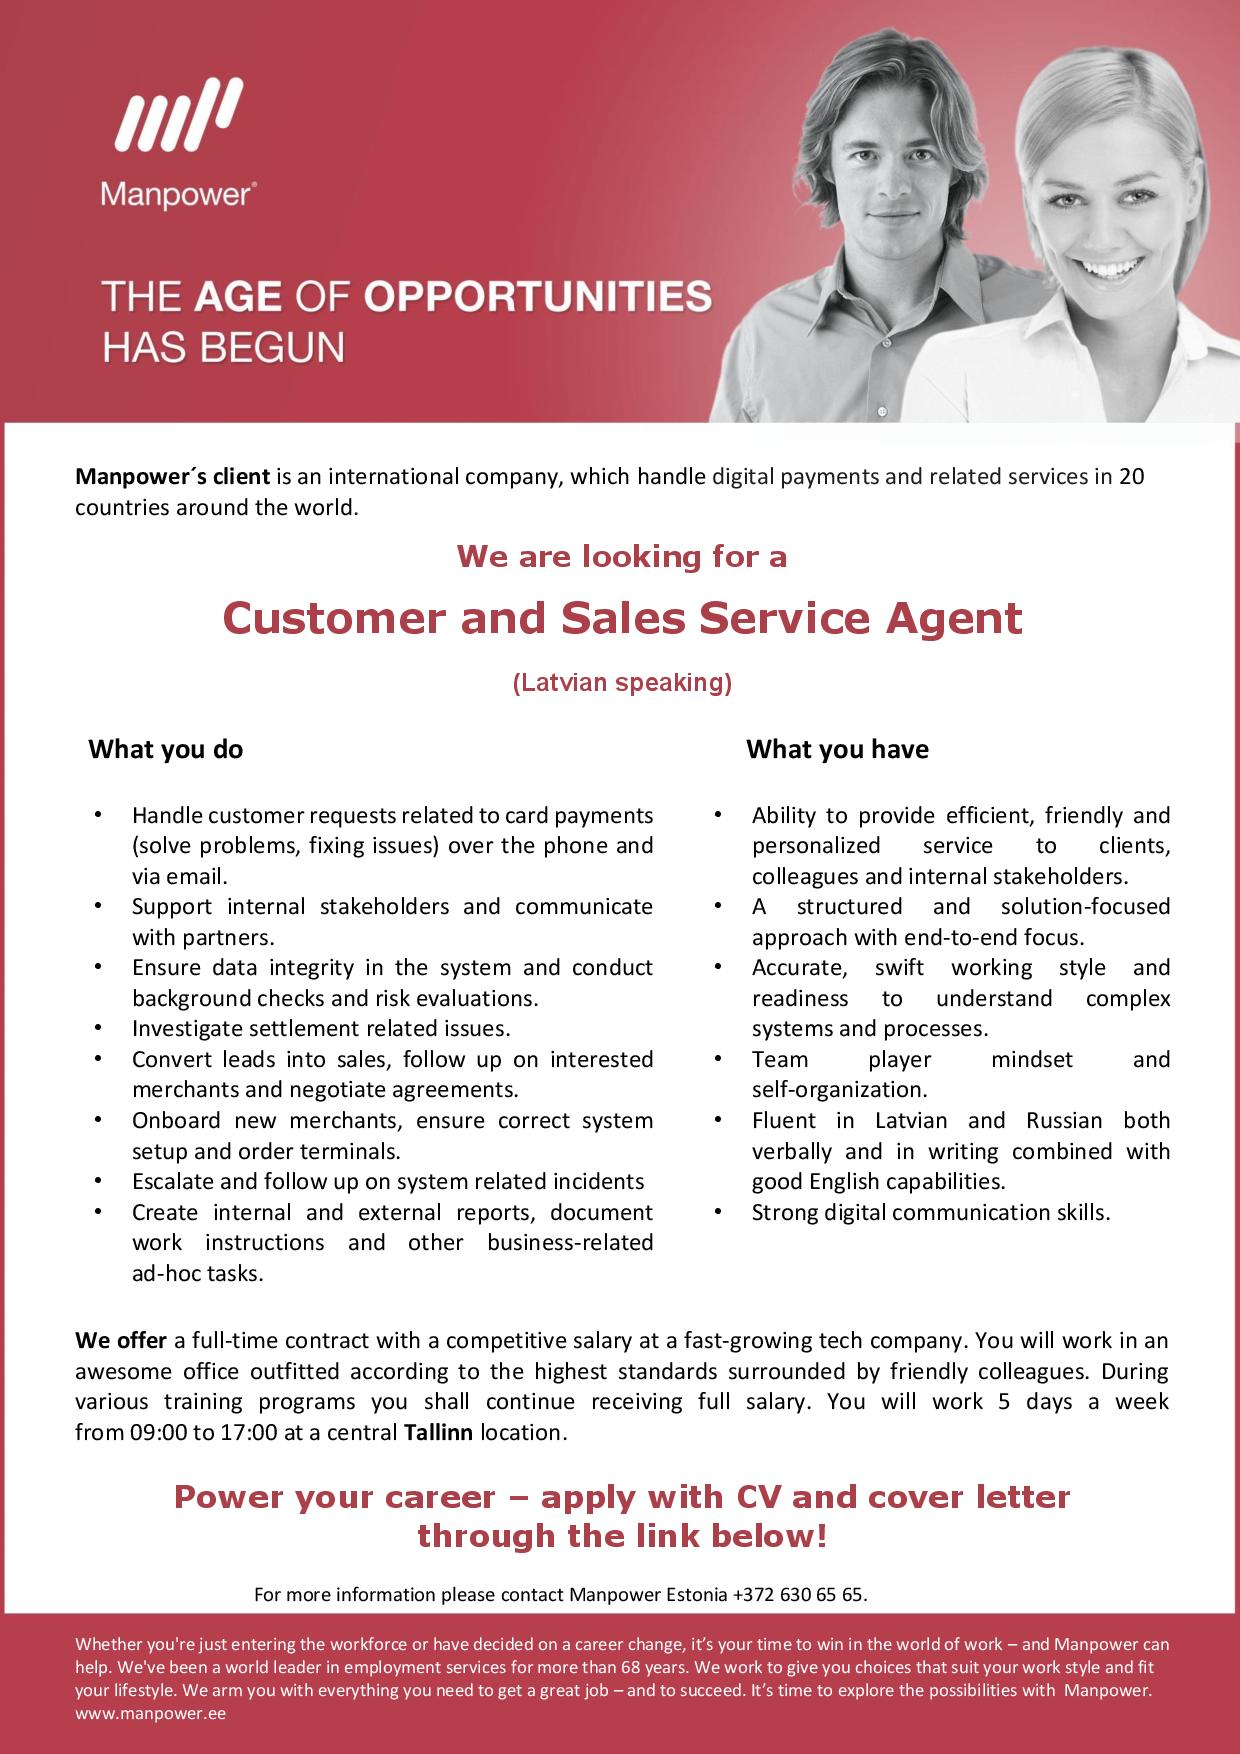 CUSTOMER AND SALES SERVICE AGENT (LATVIAN SPEAKING)